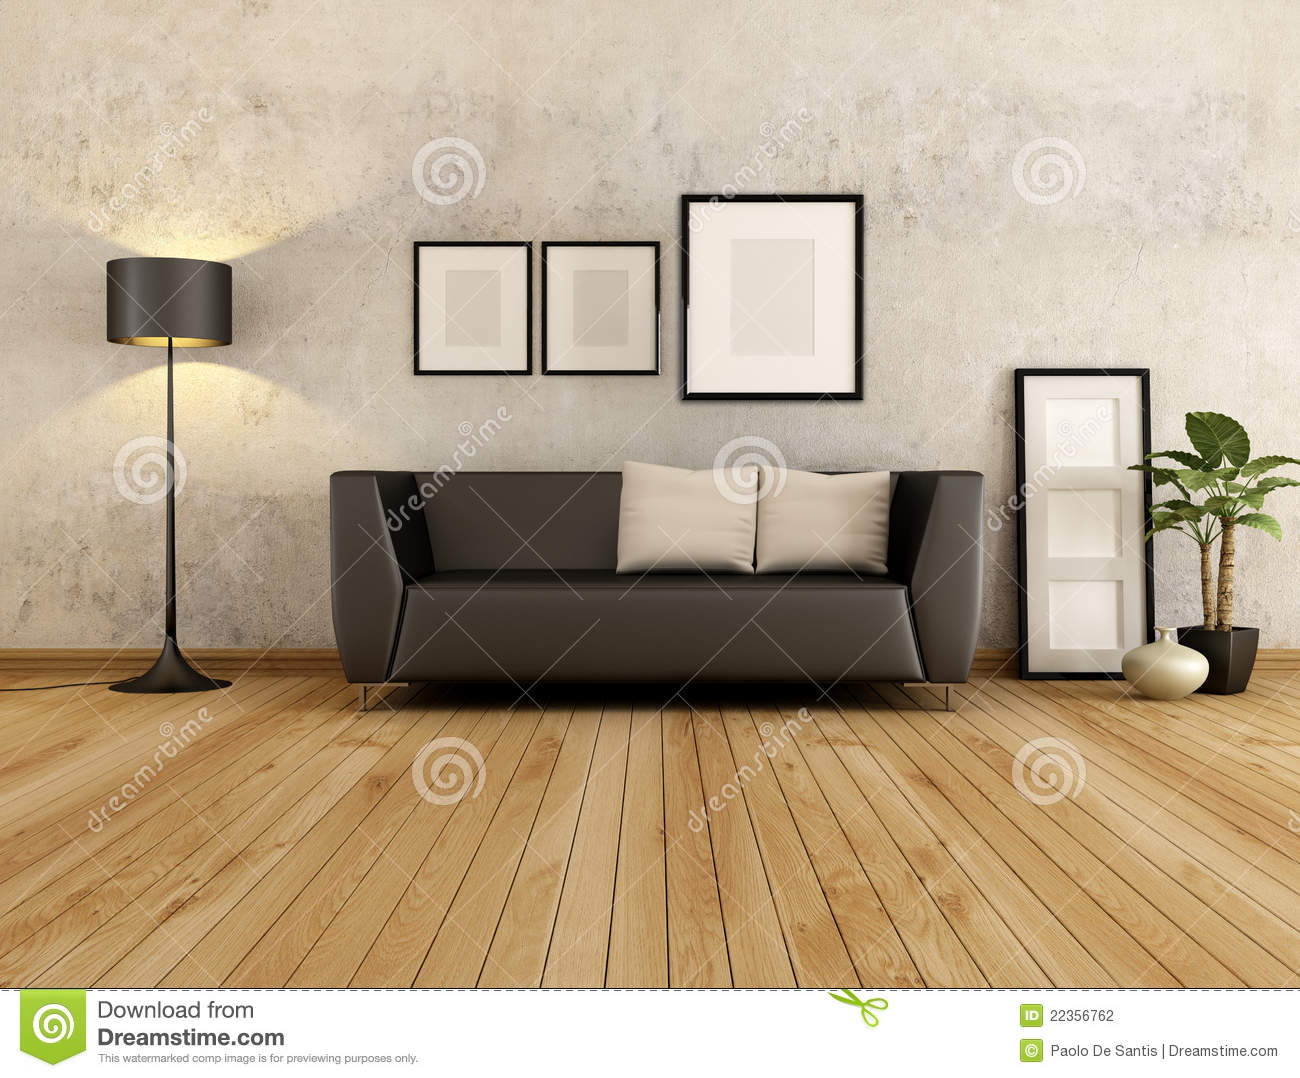 Living Room Stock Photography - Image: 22356762